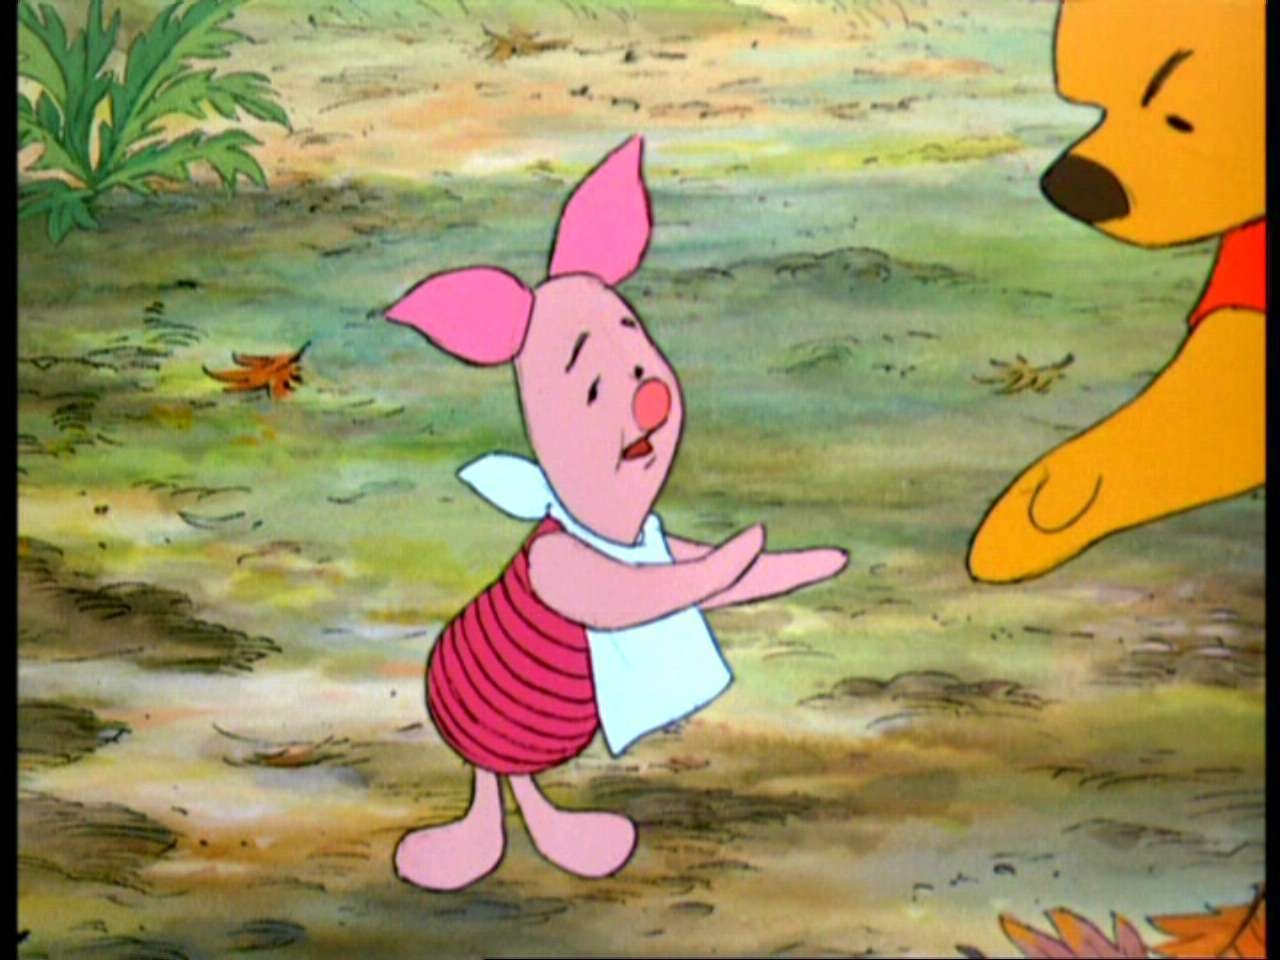 Winnie the Pooh and the Blustery hari